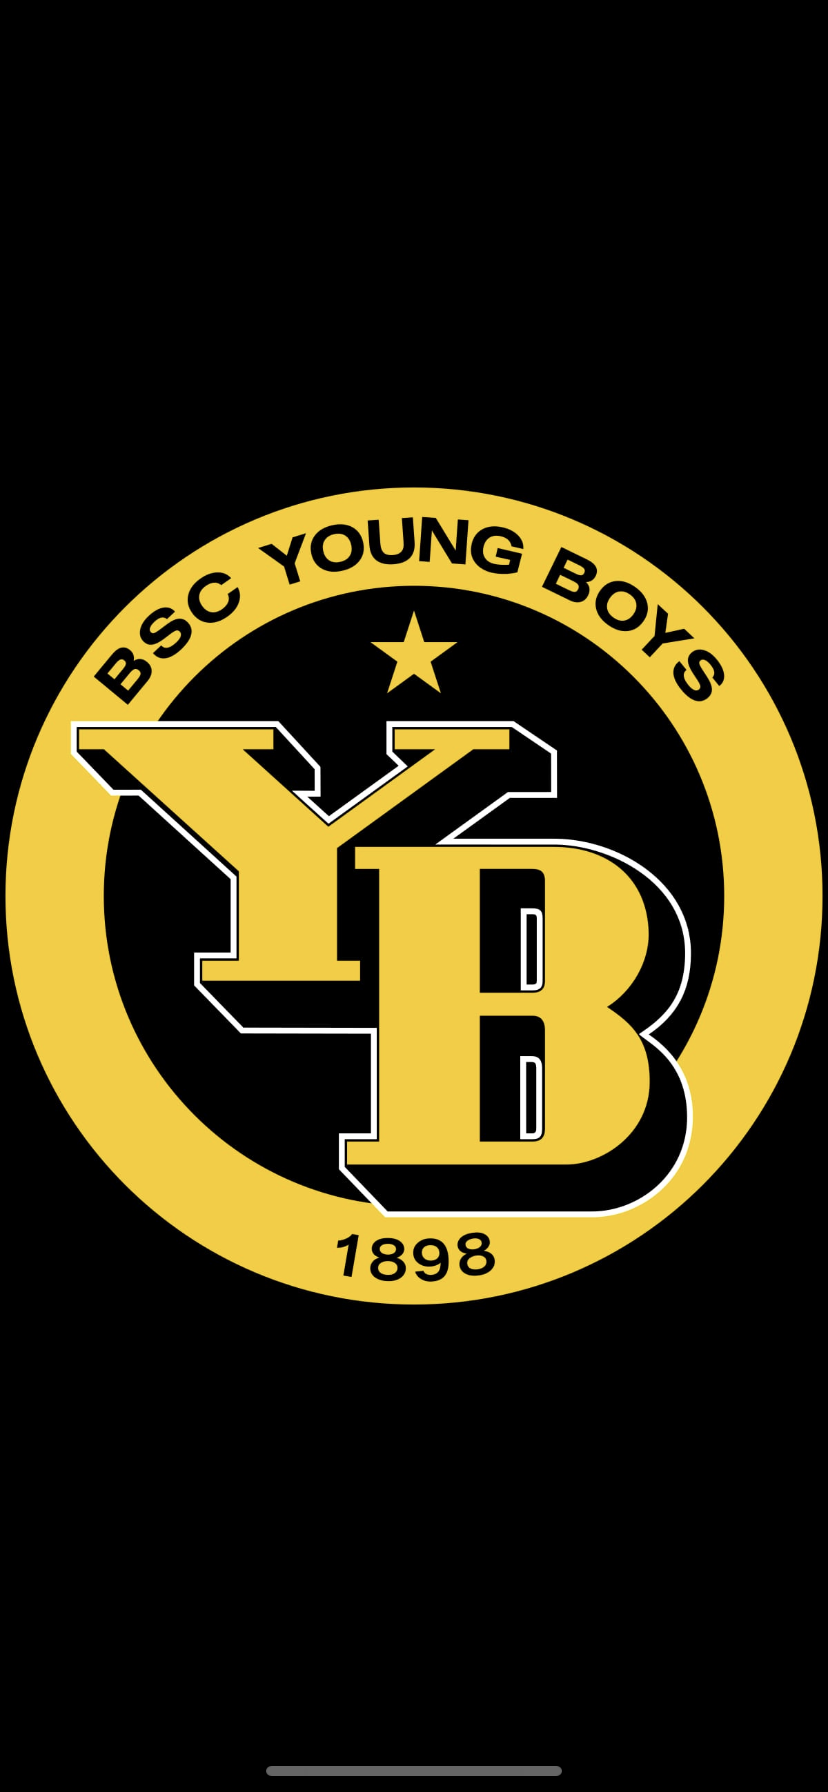 Young Boys București